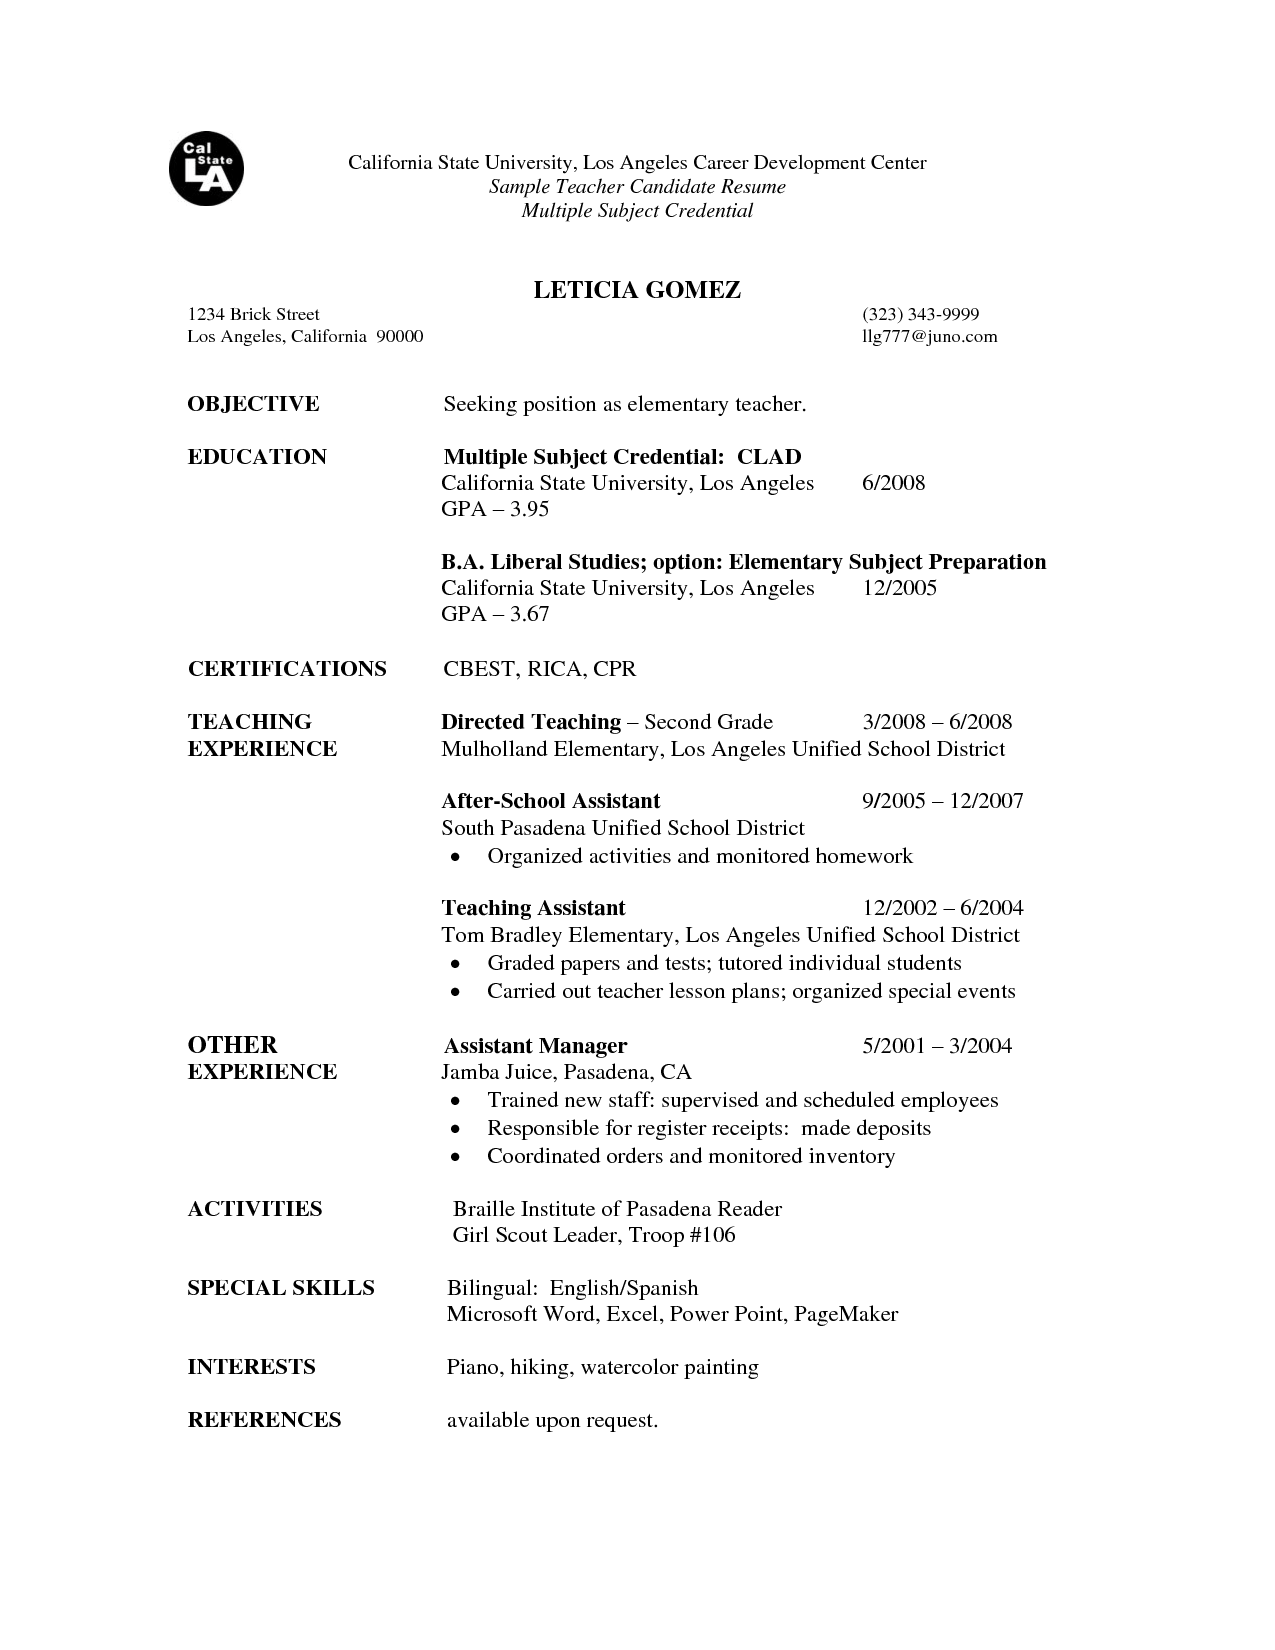 Teacher Resume Examples Classy Image Result For First Resume For Teacher  Resume  Pinterest Review